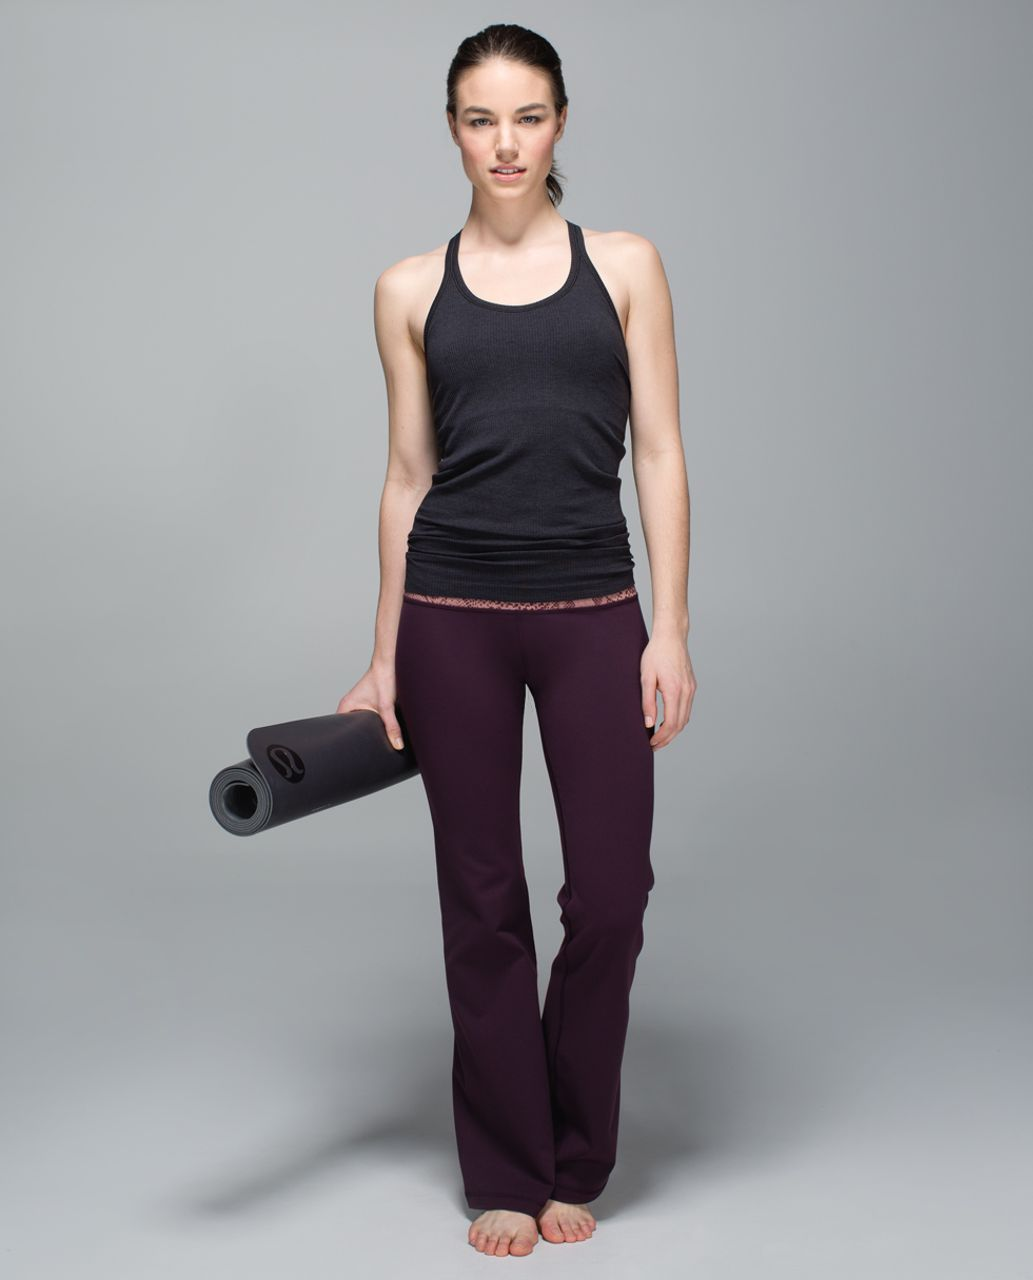 Lululemon Groove Pant II *Full-On Luon (Roll Down - Tall) - Black Cherry / Desert Snake Bark Berry Multi